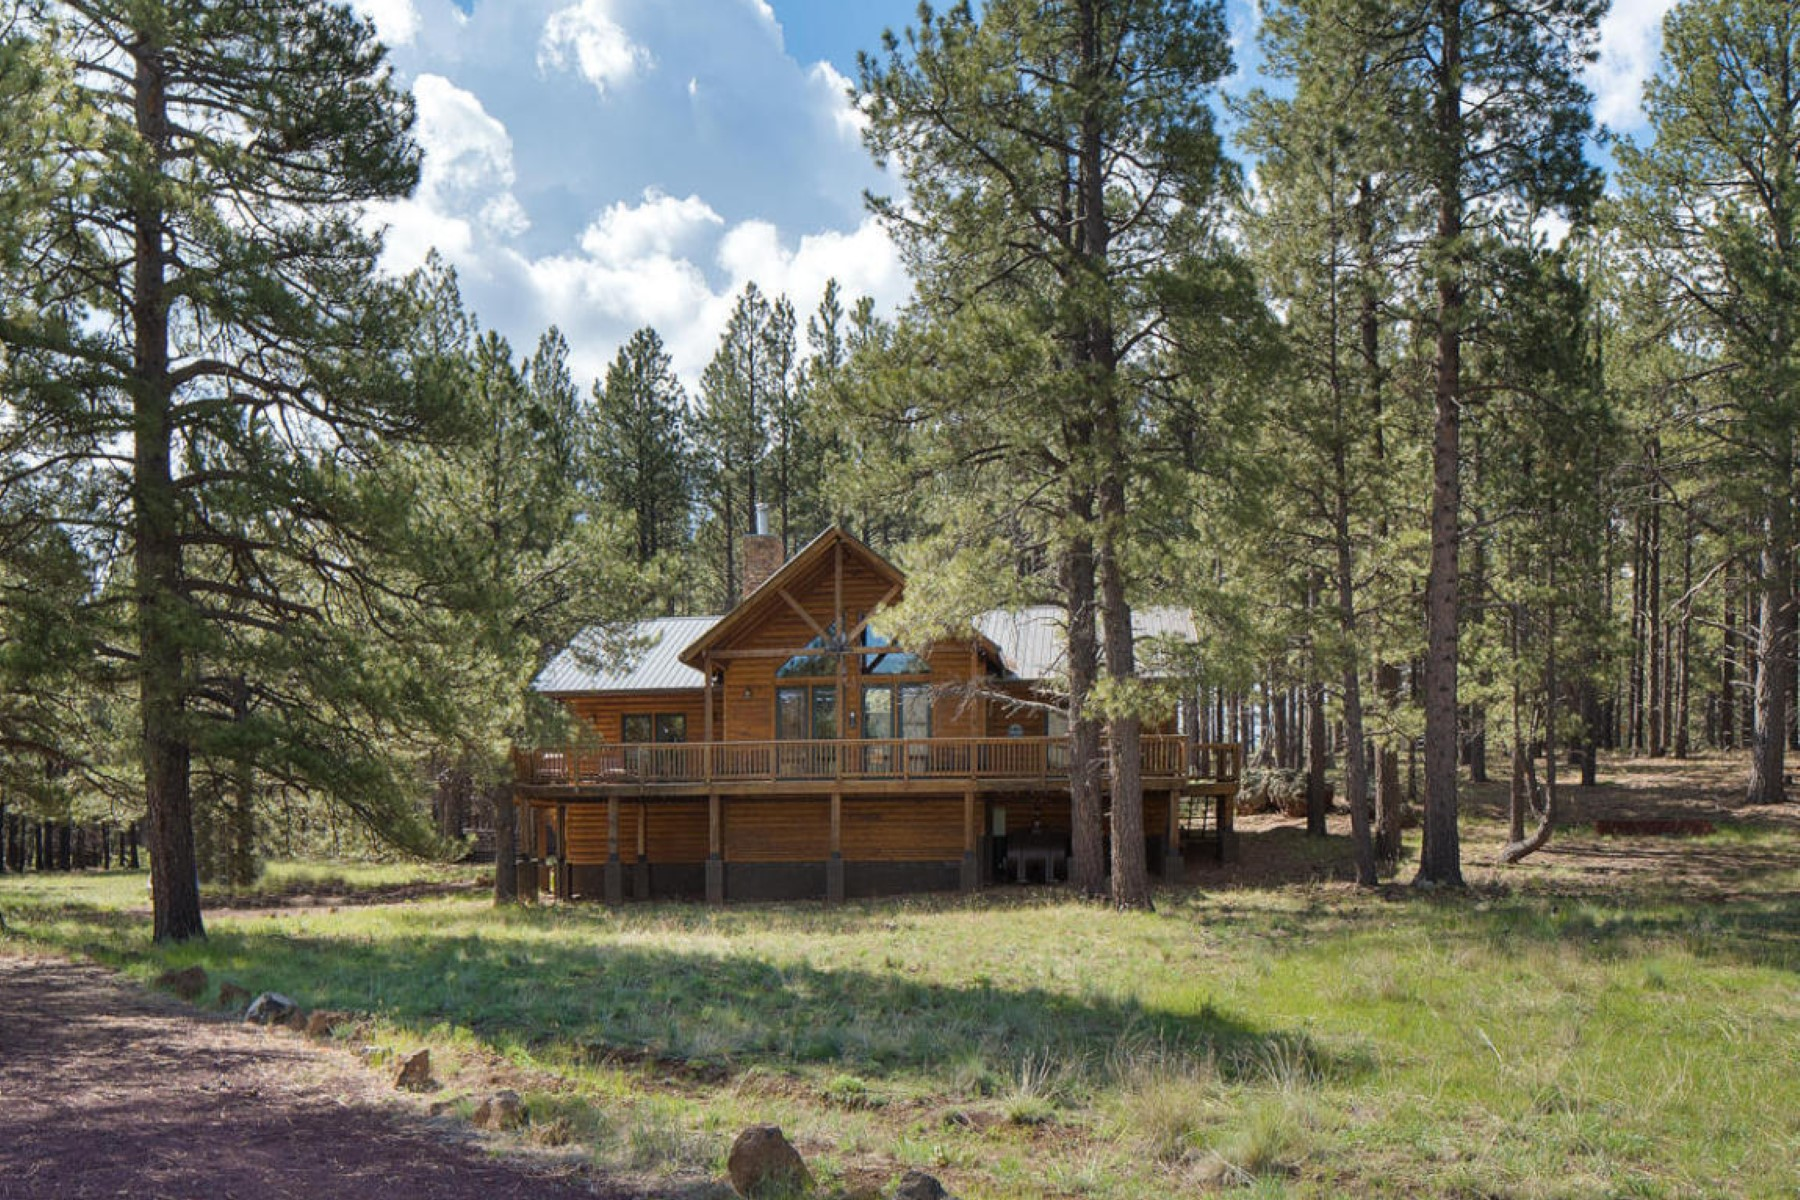 Maison unifamiliale pour l Vente à This is a rare opportunity to own a private custom log sided mountain retreat. 17242 Crowley TRL Flagstaff, Arizona, 86001 États-Unis